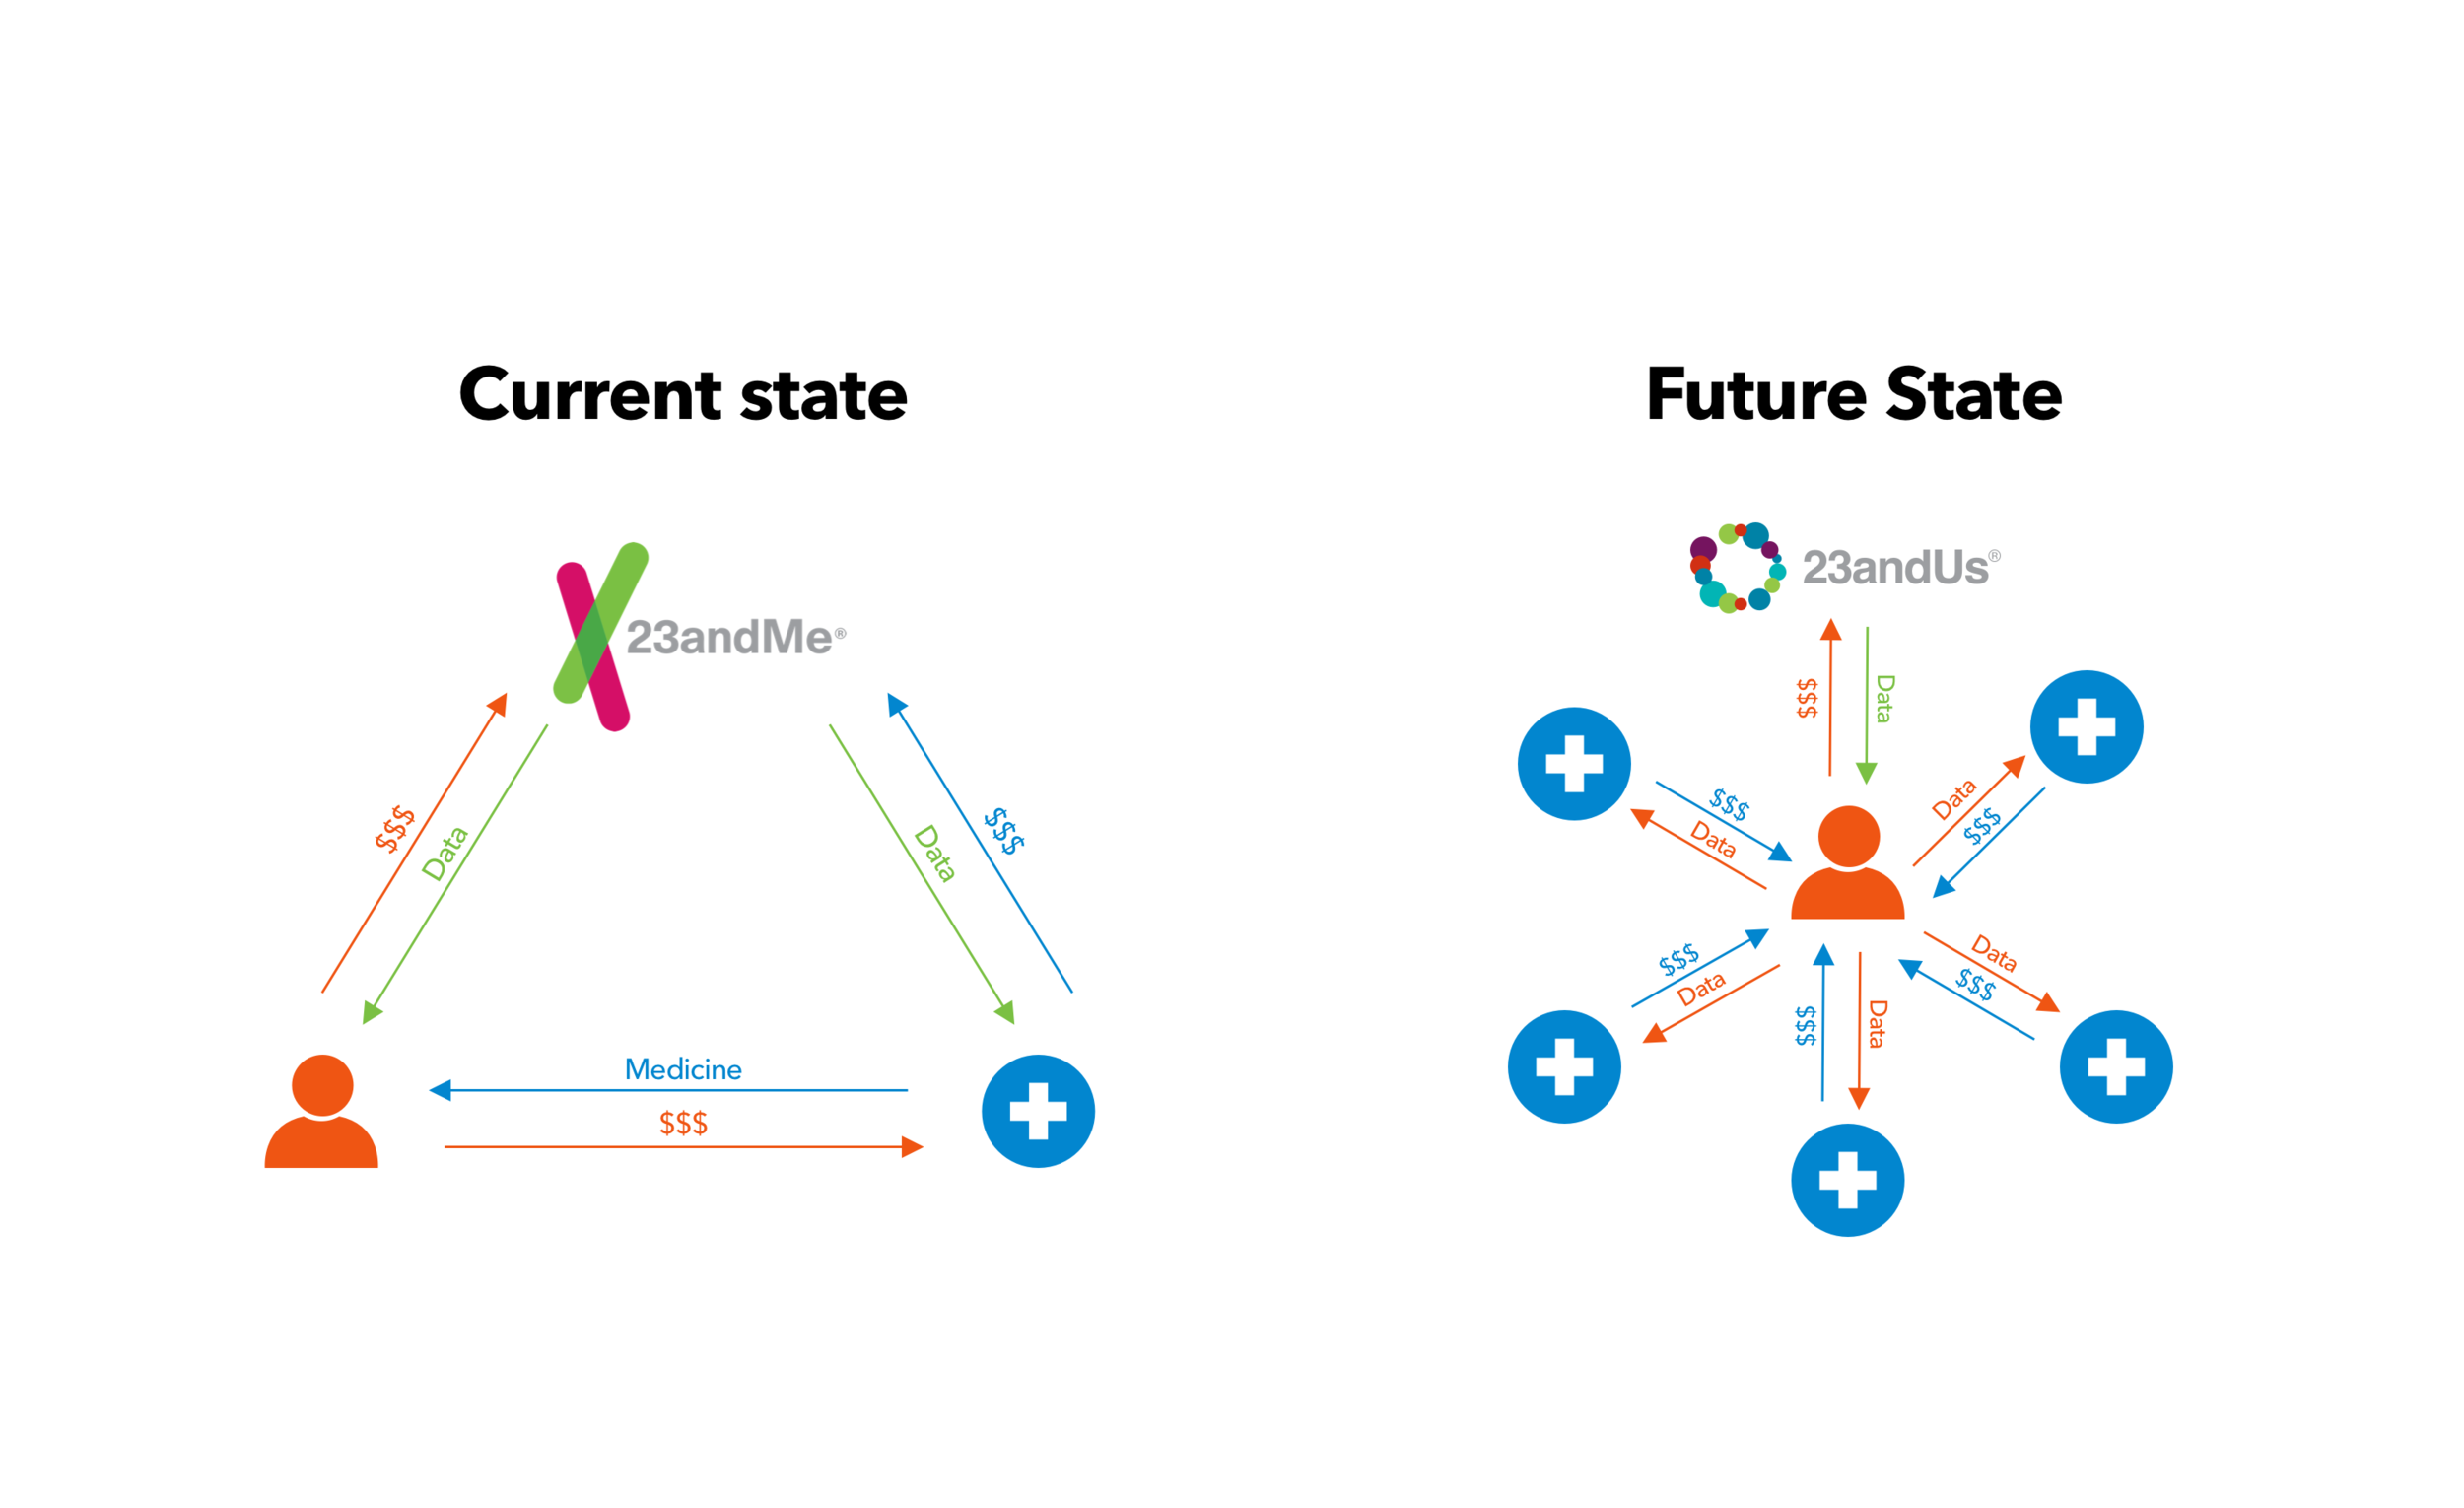 In its current state, the user is peripheral in 23andMe's platform, paying to have their information accessed and to access the medicine that would benefit them. With 23andUs, we place the user at the center of the experience, allowing them to benefit from where their data goes on each separate occasion.